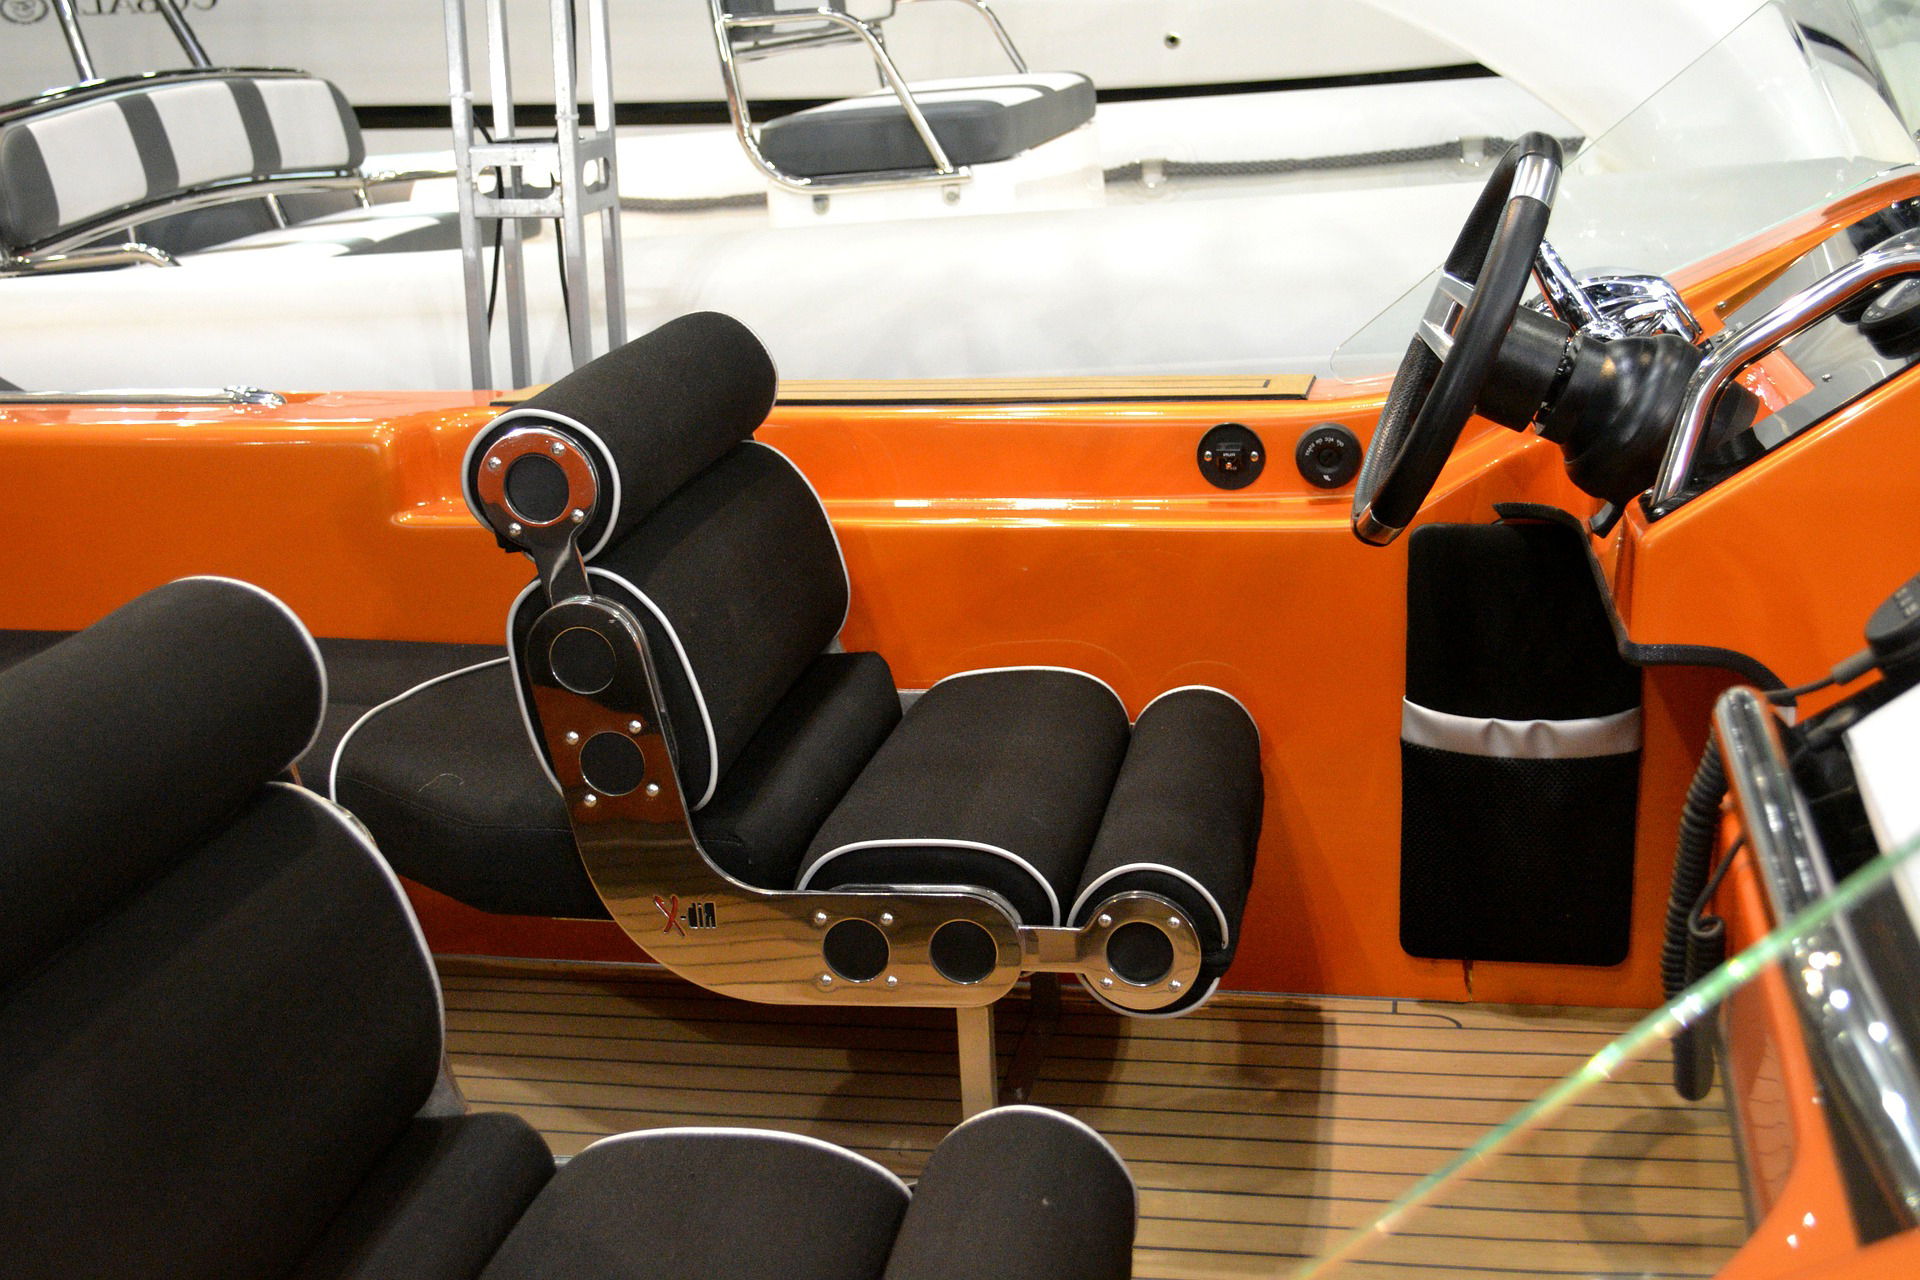 Interior of a modernistic pleasure craft.